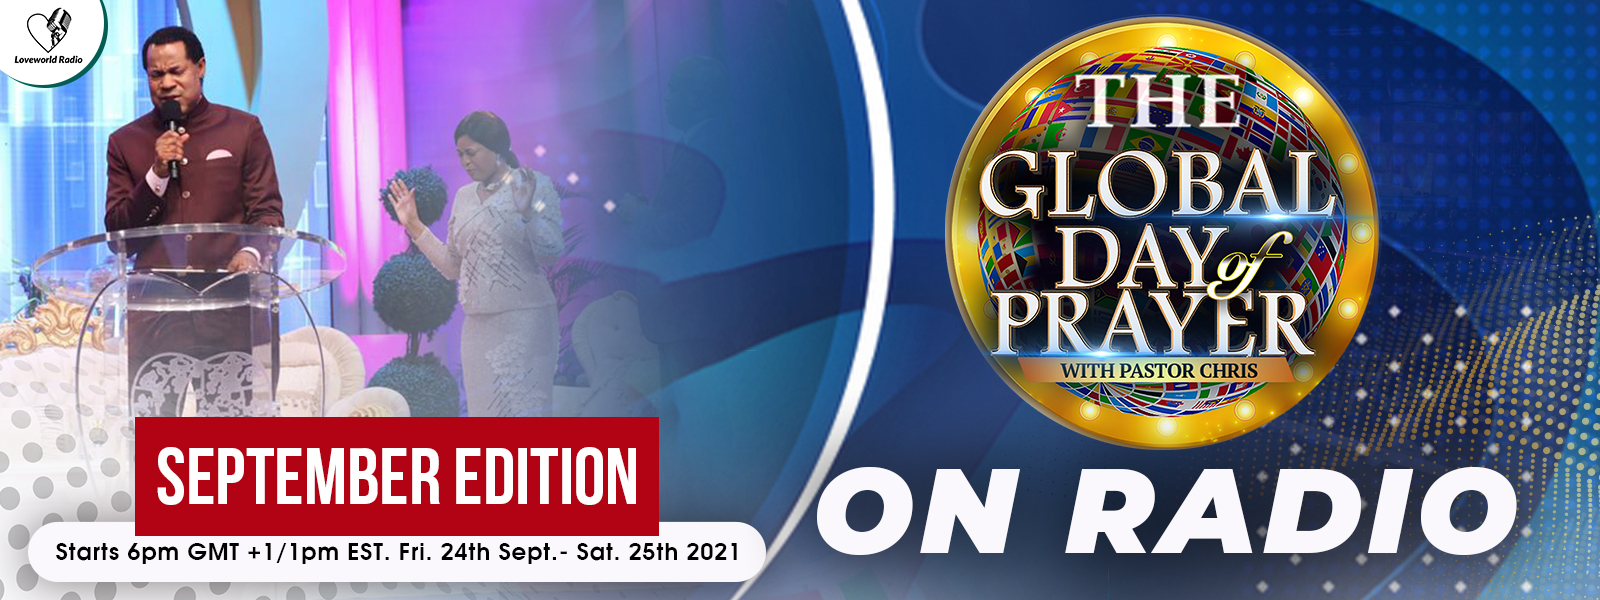 GLOBAL DAY OF PRAYER WITH PASTOR CHRIS(SEPTEMBER EDITION)